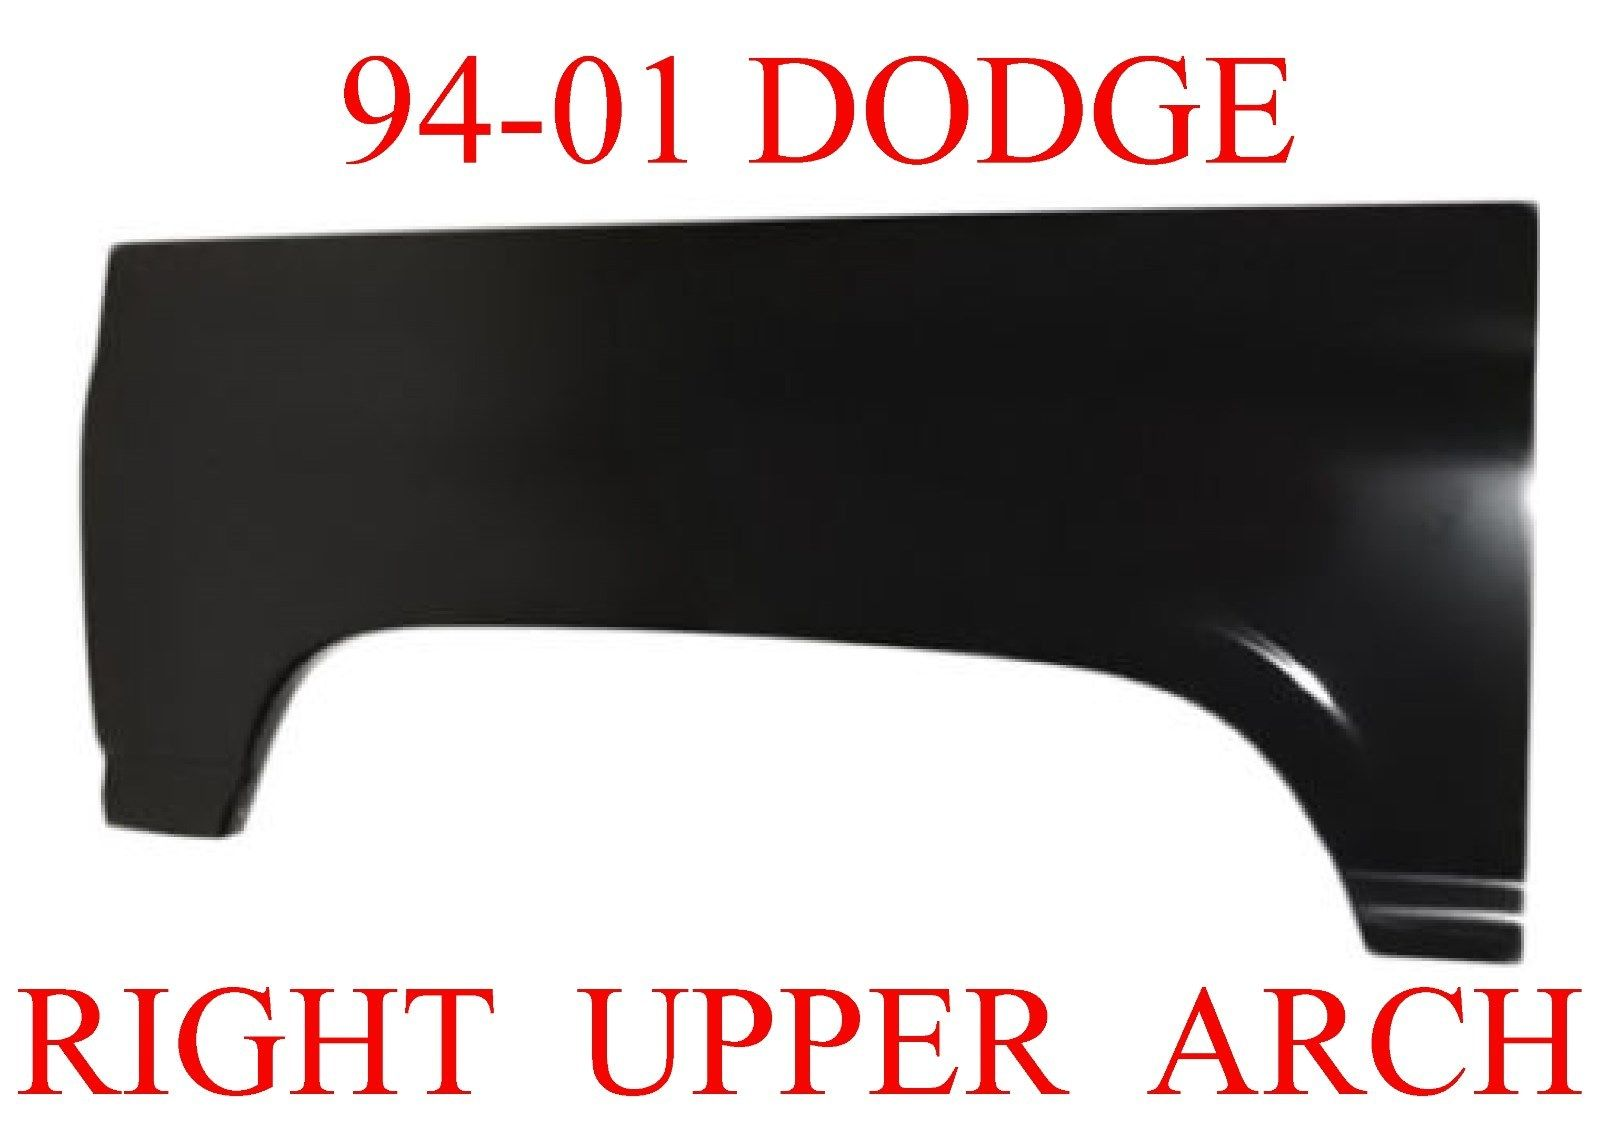 94-01 Dodge Ram Right Upper Arch